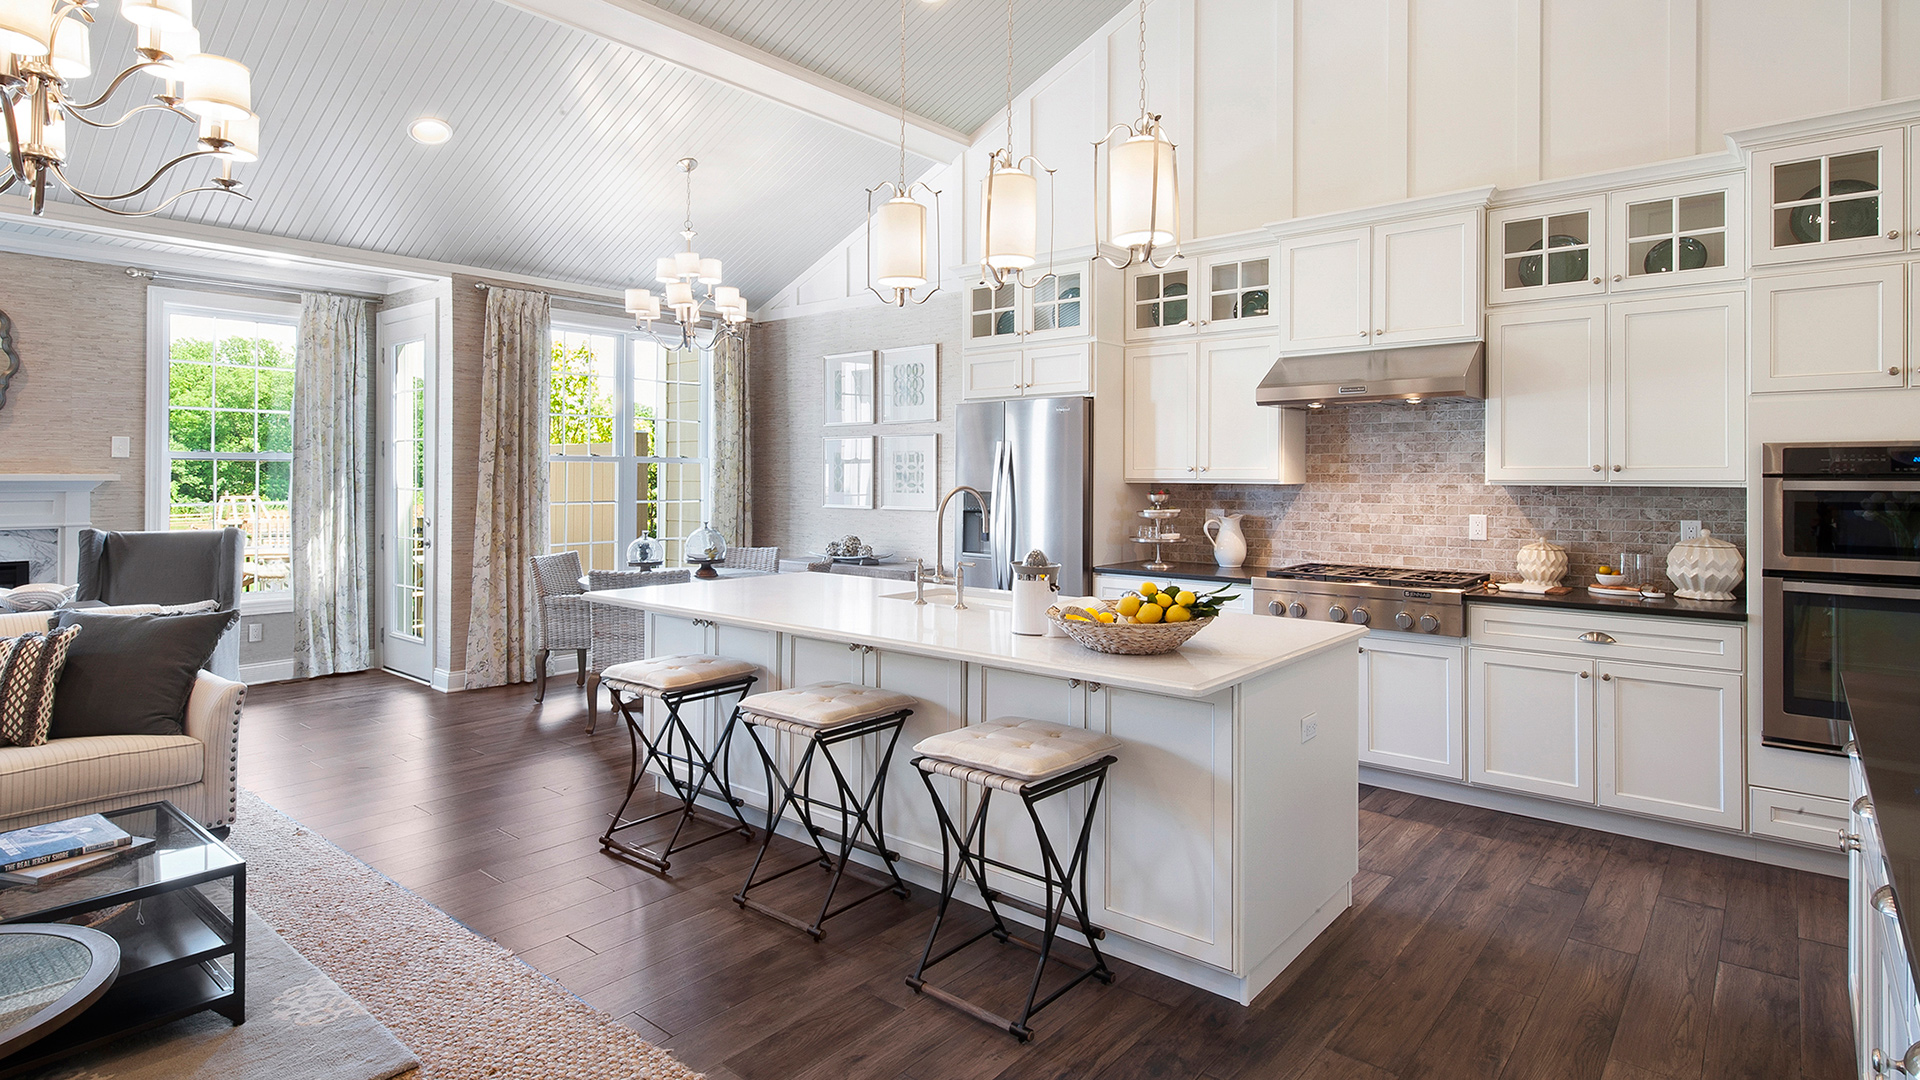 The open-concept kitchen and great room provide the ideal space for entertaining